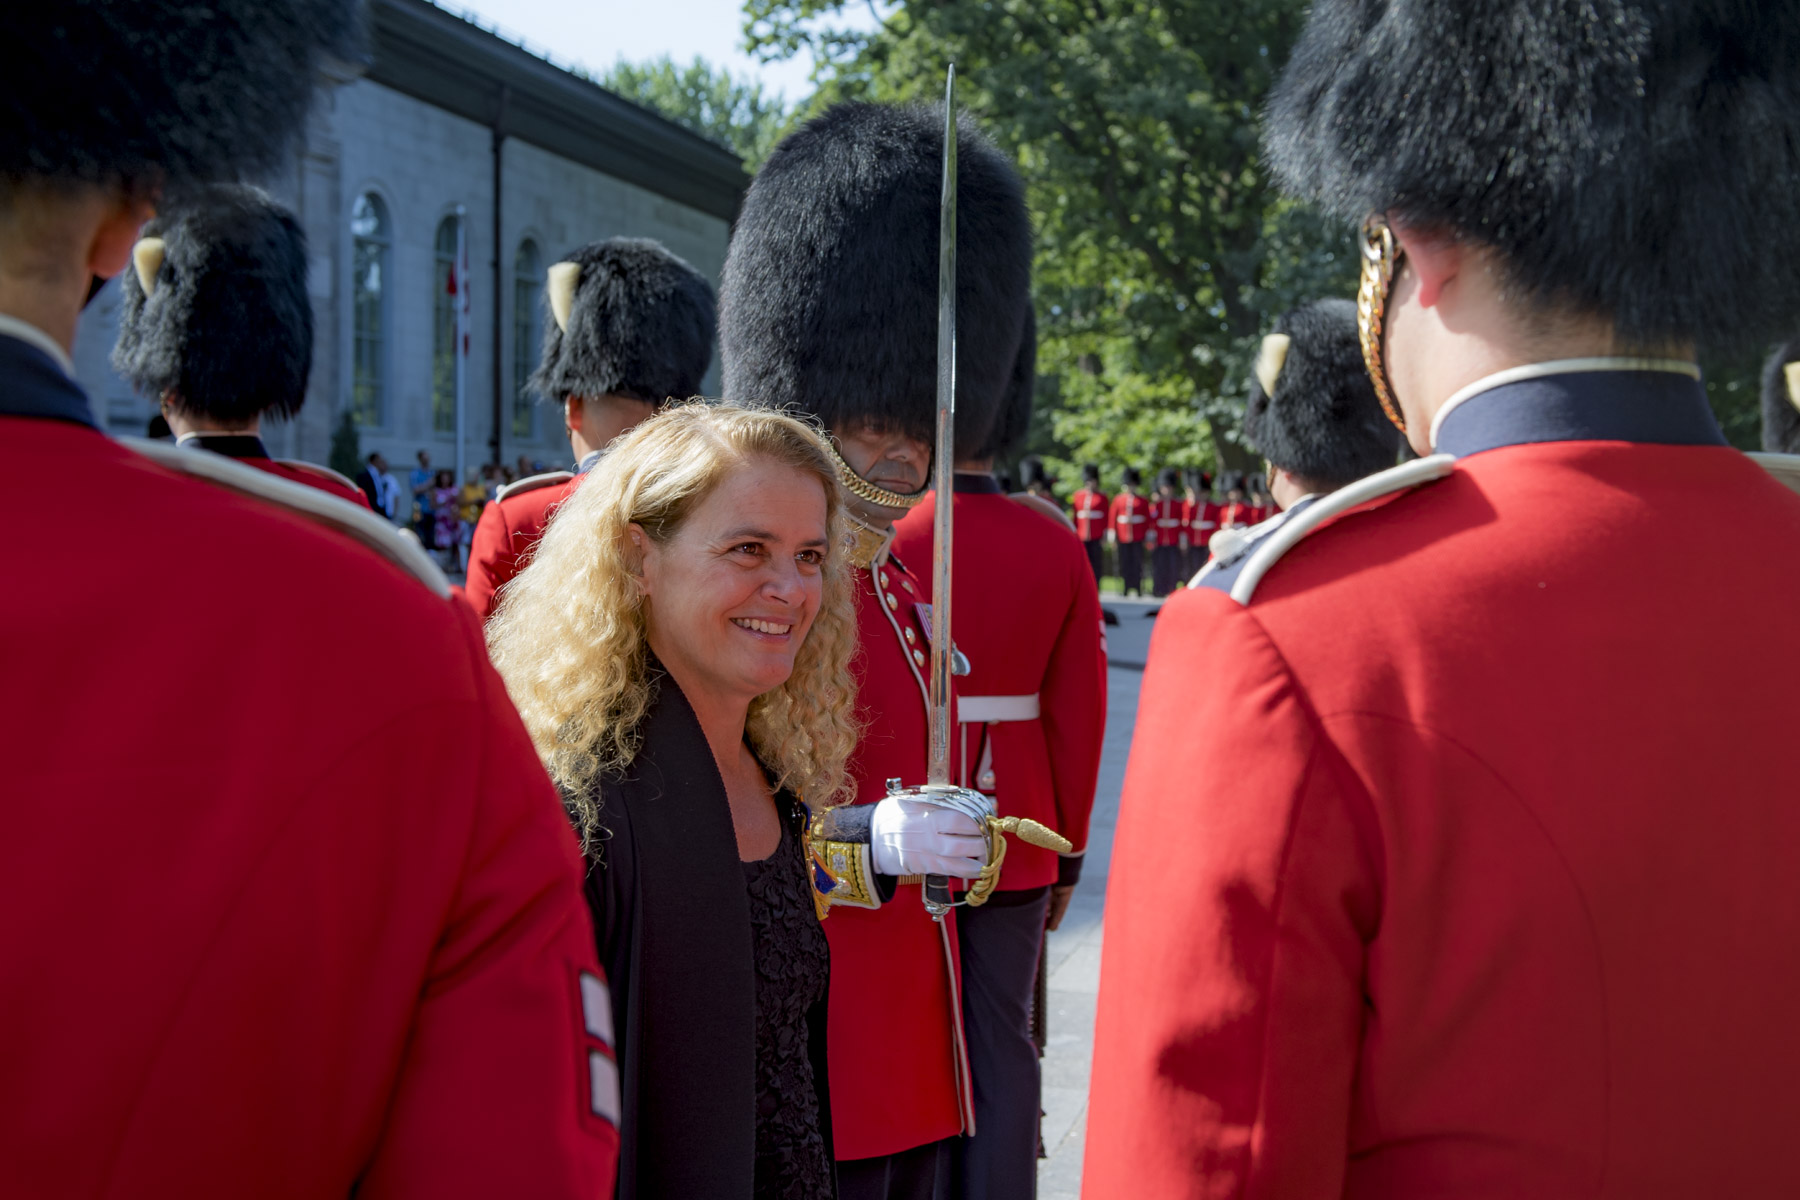 During the inspection, she spoke to members of the Ceremonial Guard who have, among their other duties, stood sentry at Rideau Hall through out the summer.